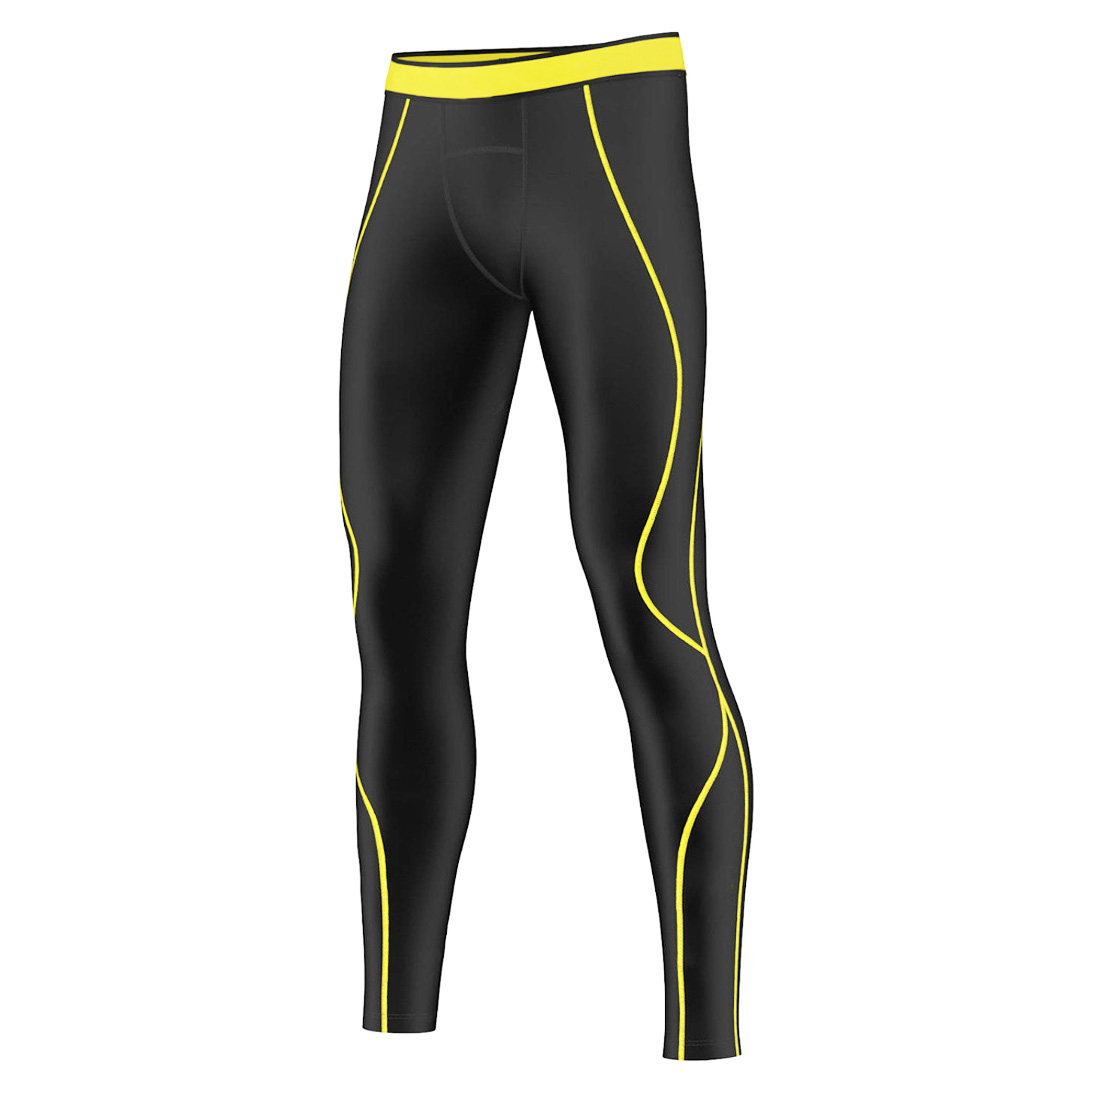 Shop compression pants & tights at Eastbay. Nike, Under Armour, Jordan & Eastbay compression pants are form-fitting and keep muscles warm & your body dry.